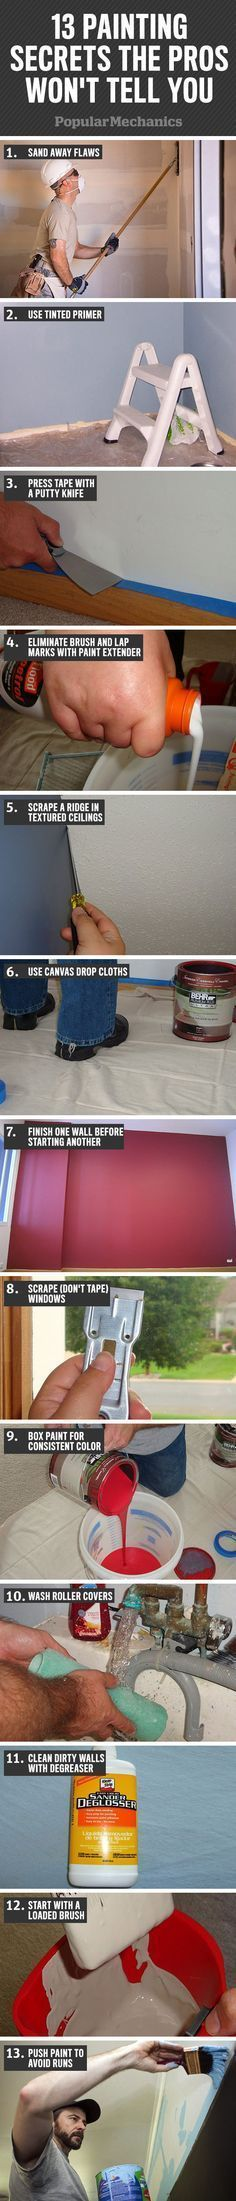 Painting Secrets the Pros Won't Tell You Each painter has slightly different methods and preferences, but the pros all know the trade secrets.Each painter has slightly different methods and preferences, but the pros all know the trade secrets. Painting Tips, House Painting, Painting Walls, Spray Painting, Painting Cupboards, Painting Baseboards, Interior Painting, Home Improvement Projects, Home Projects